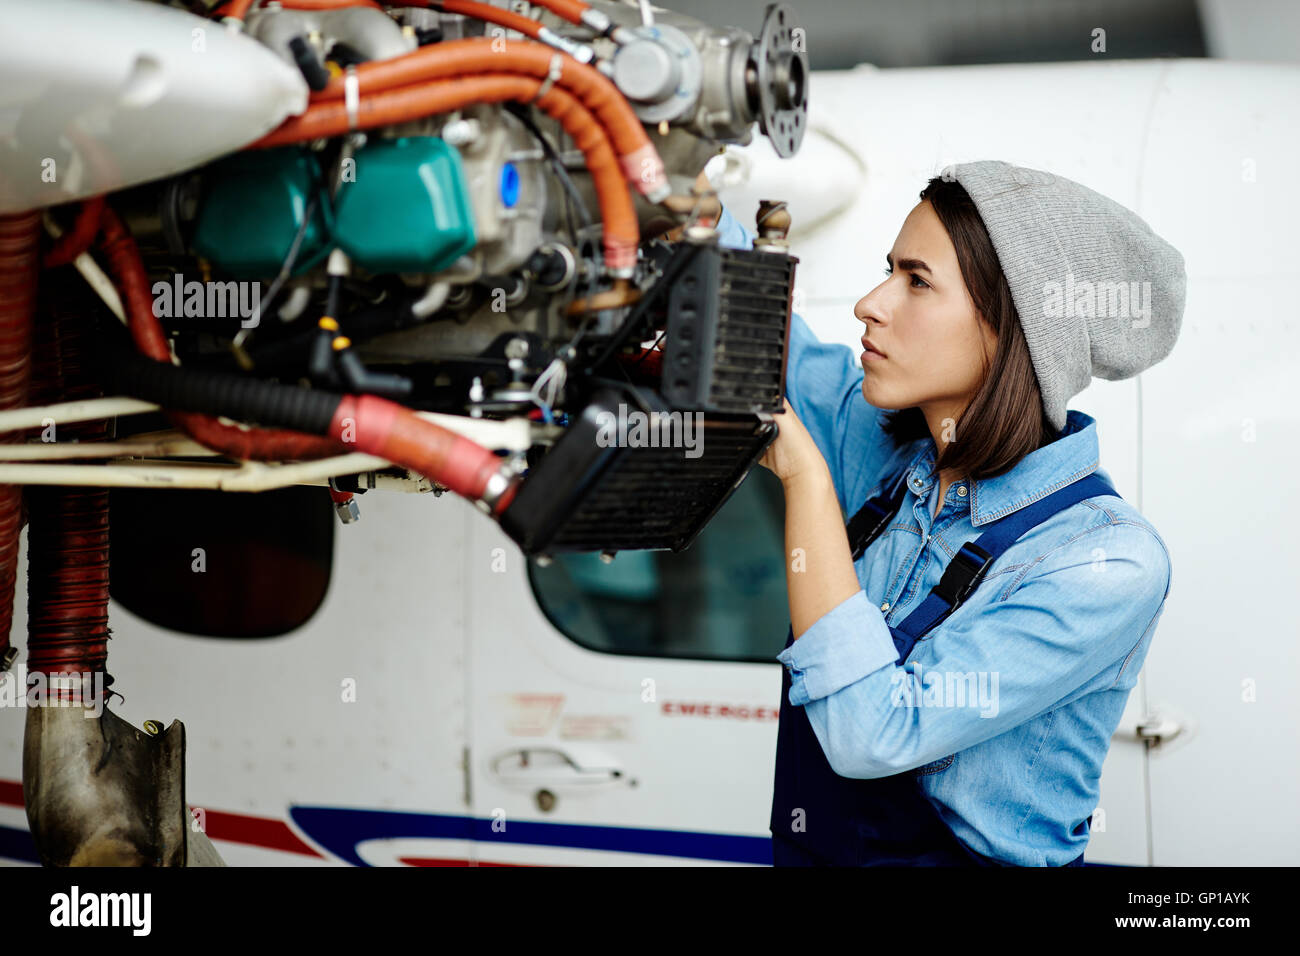 Young woman in uniform fixing something in air jet motor - Stock Image